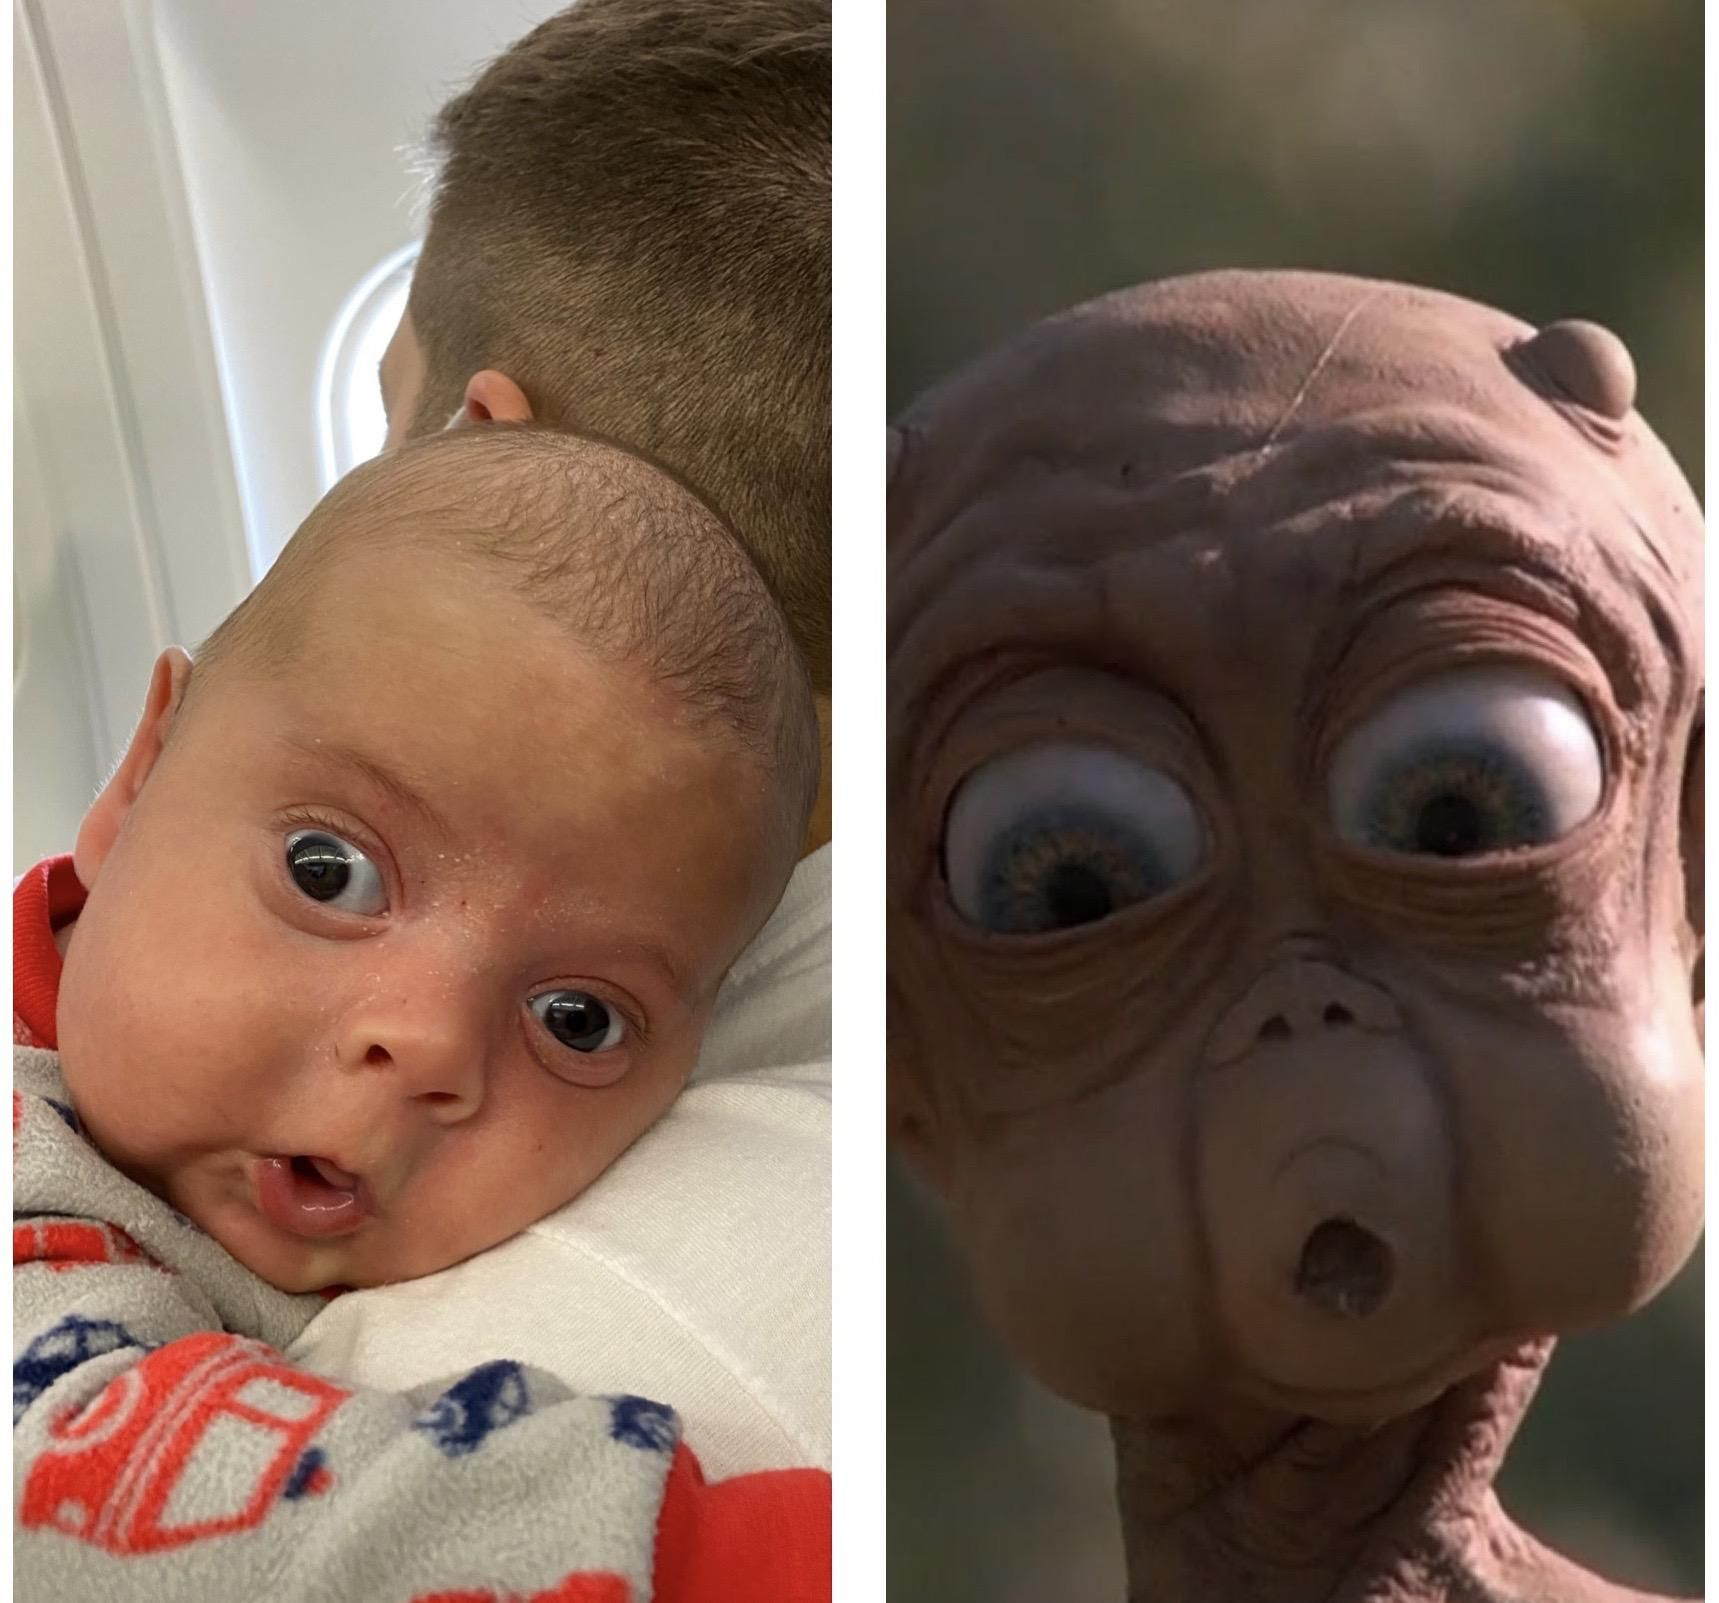 Finally realized where I recognized my son's surprised face from!